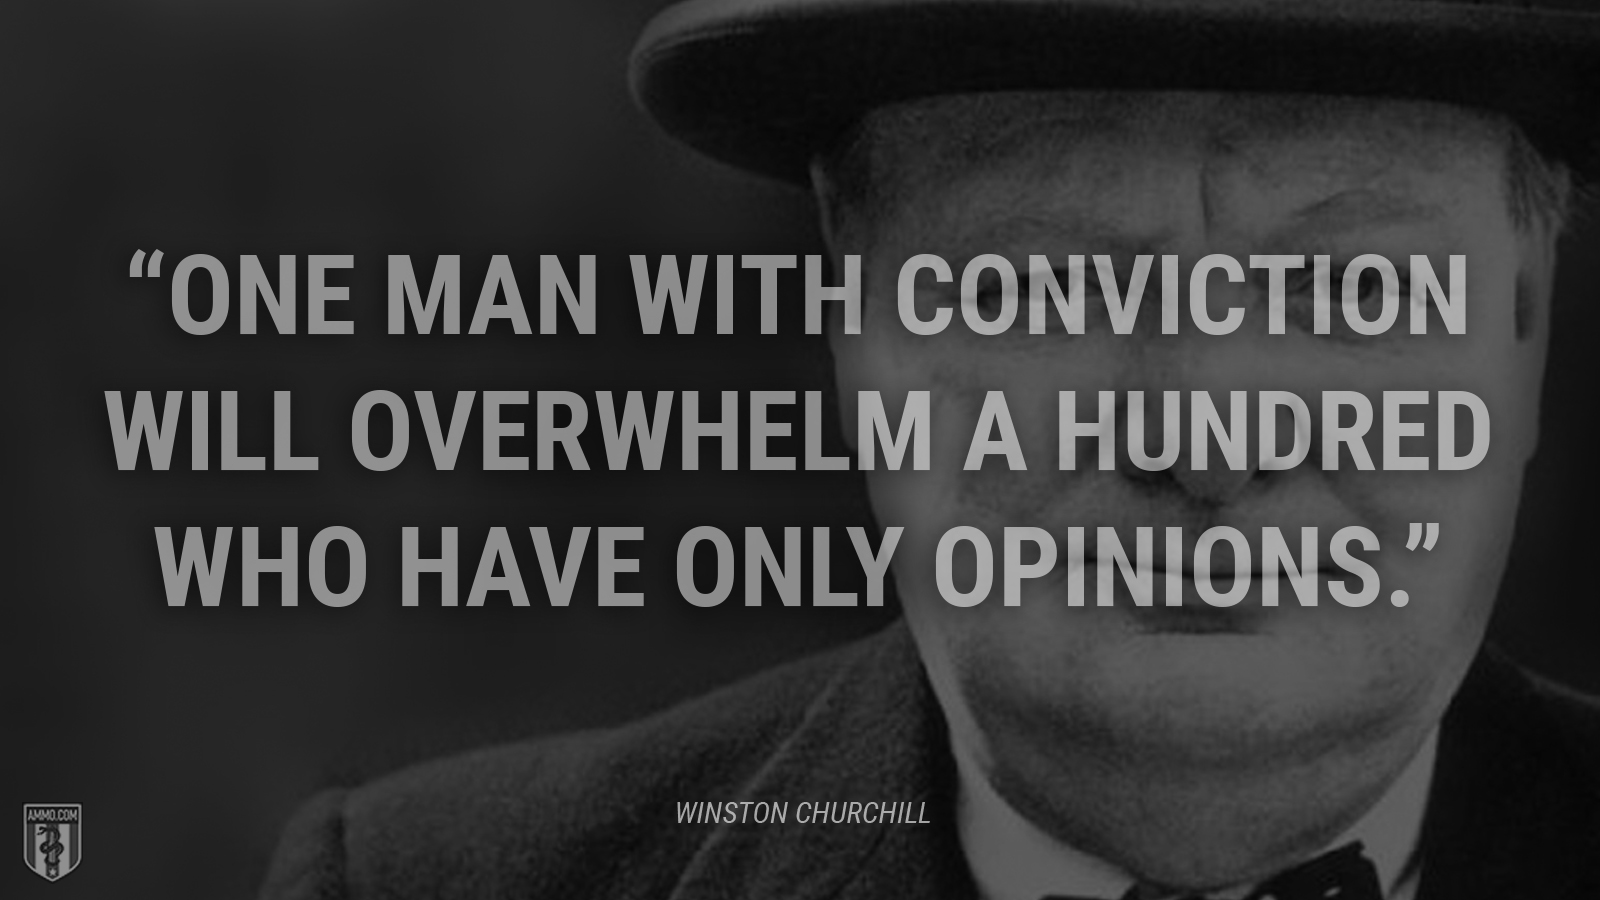 """One man with conviction will overwhelm a hundred who have only opinions."" - Winston Churchill"